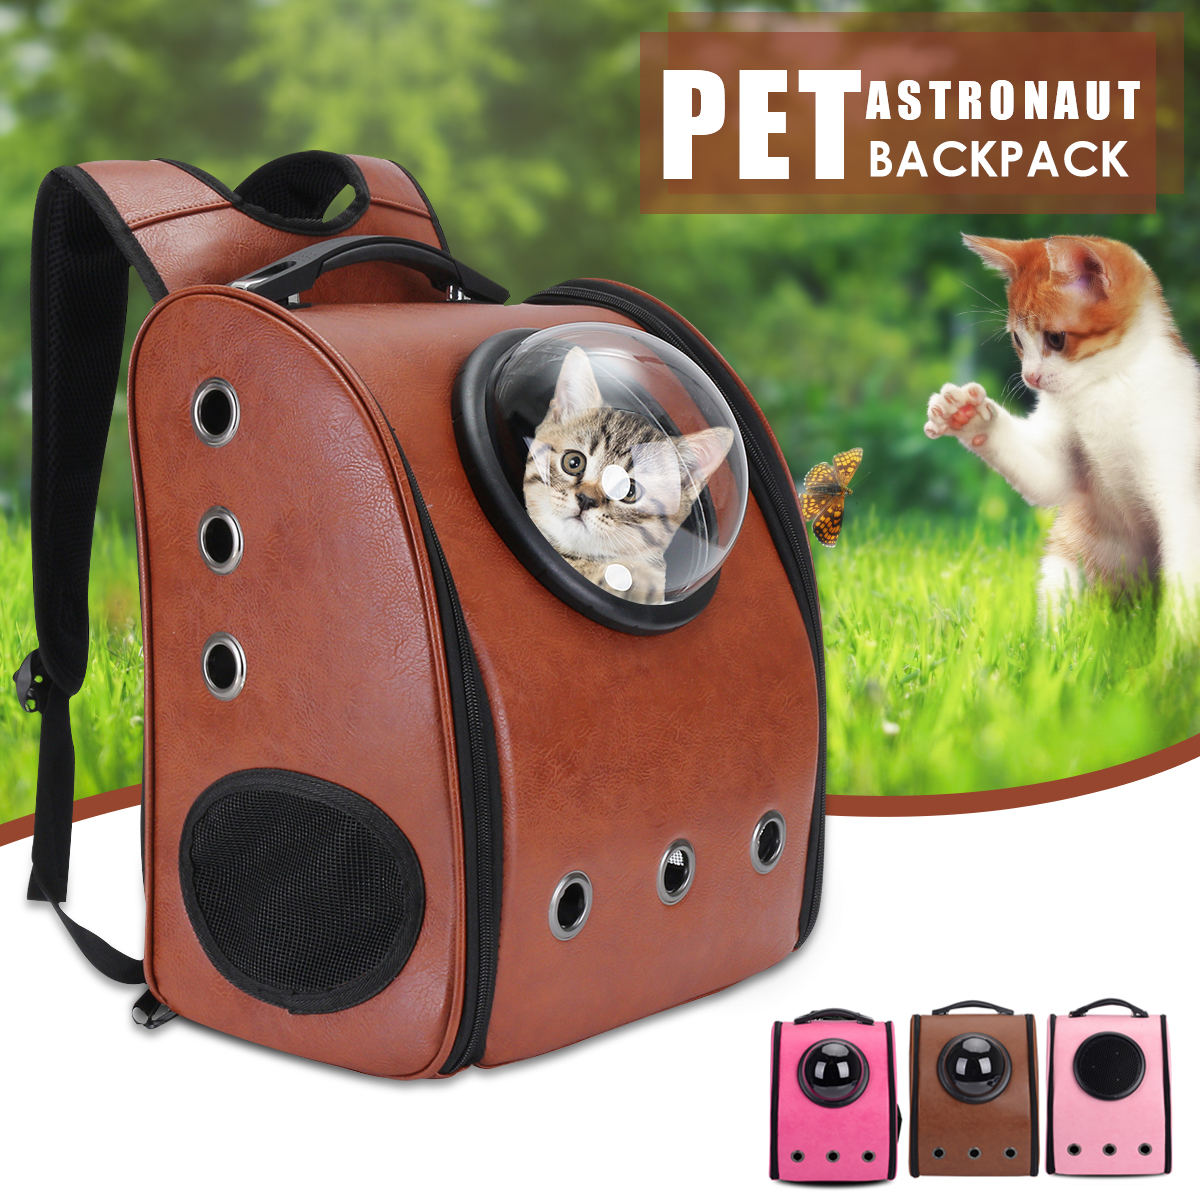 Detachable Window Backpack Pet Carrier Breathable Shoulder Bag Mobile Bed for Cats, Dogs, Small Animals